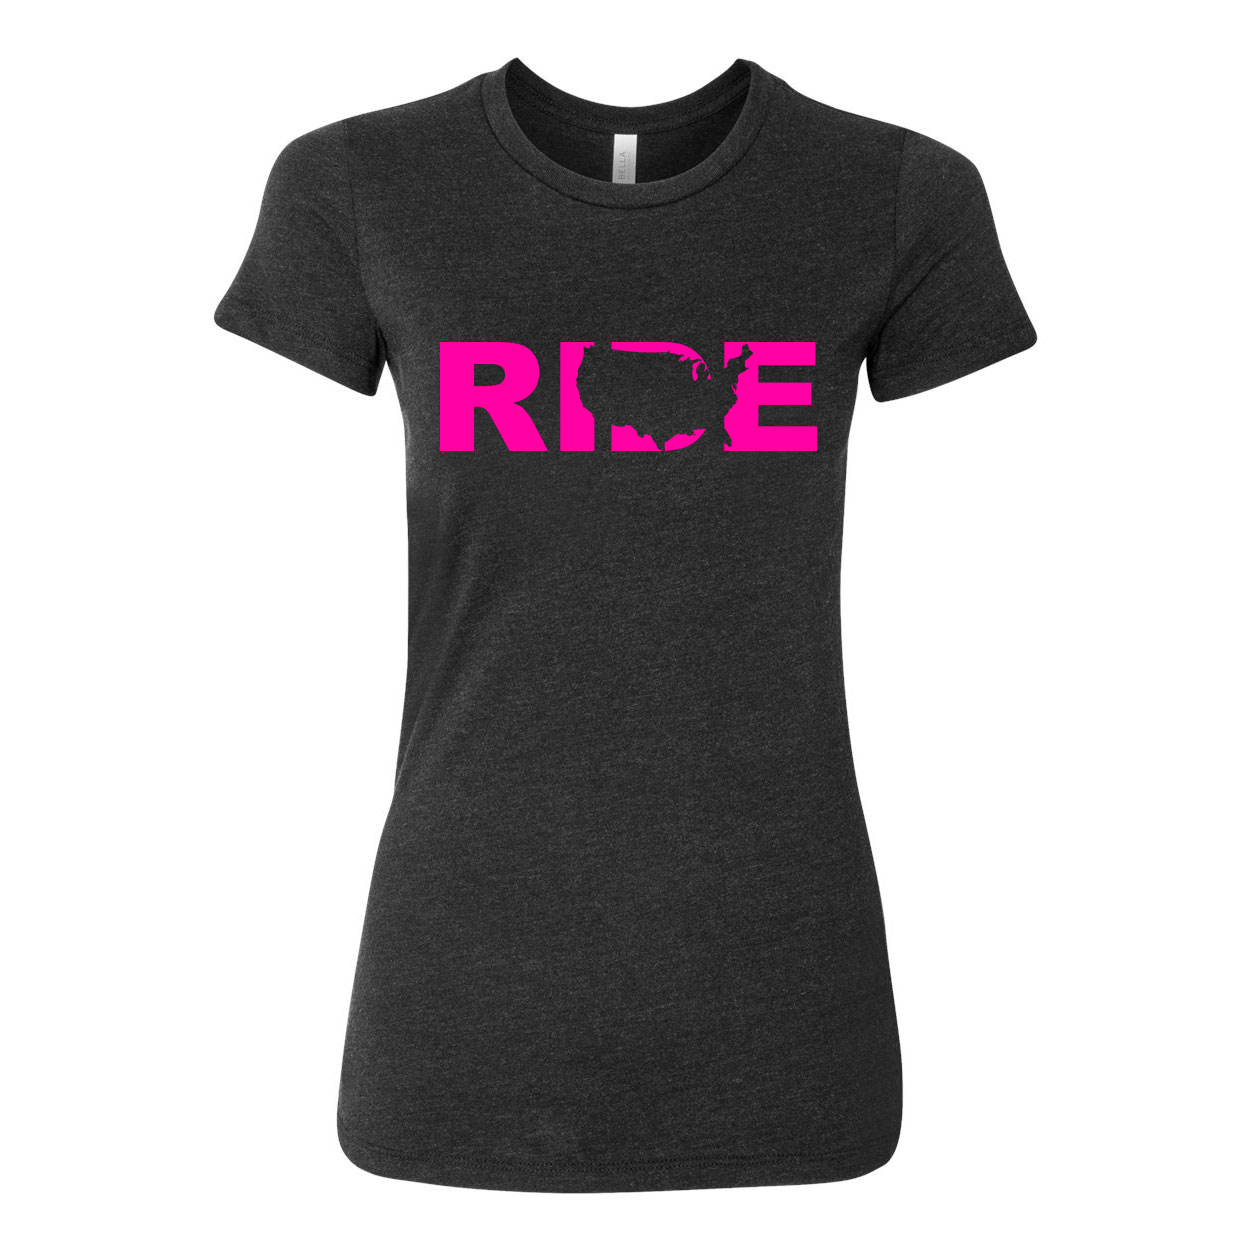 Ride United States Women's Classic Fitted Tri-Blend T-Shirt Dark Heather Gray (Pink Logo)